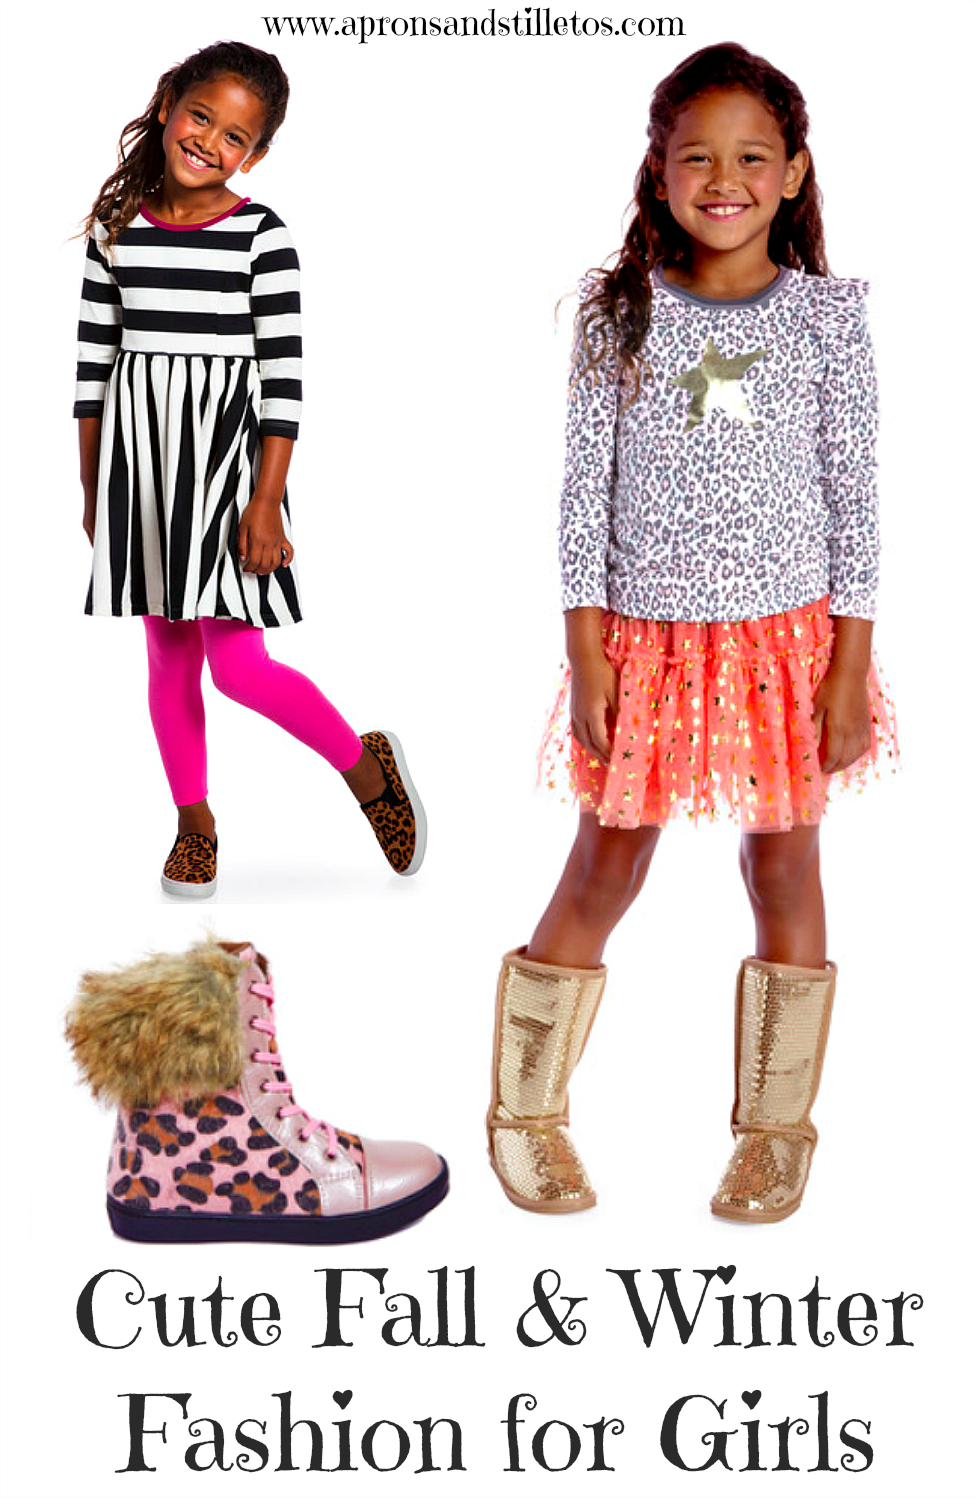 Check out all of this cute Fall & Winter fashion for girls